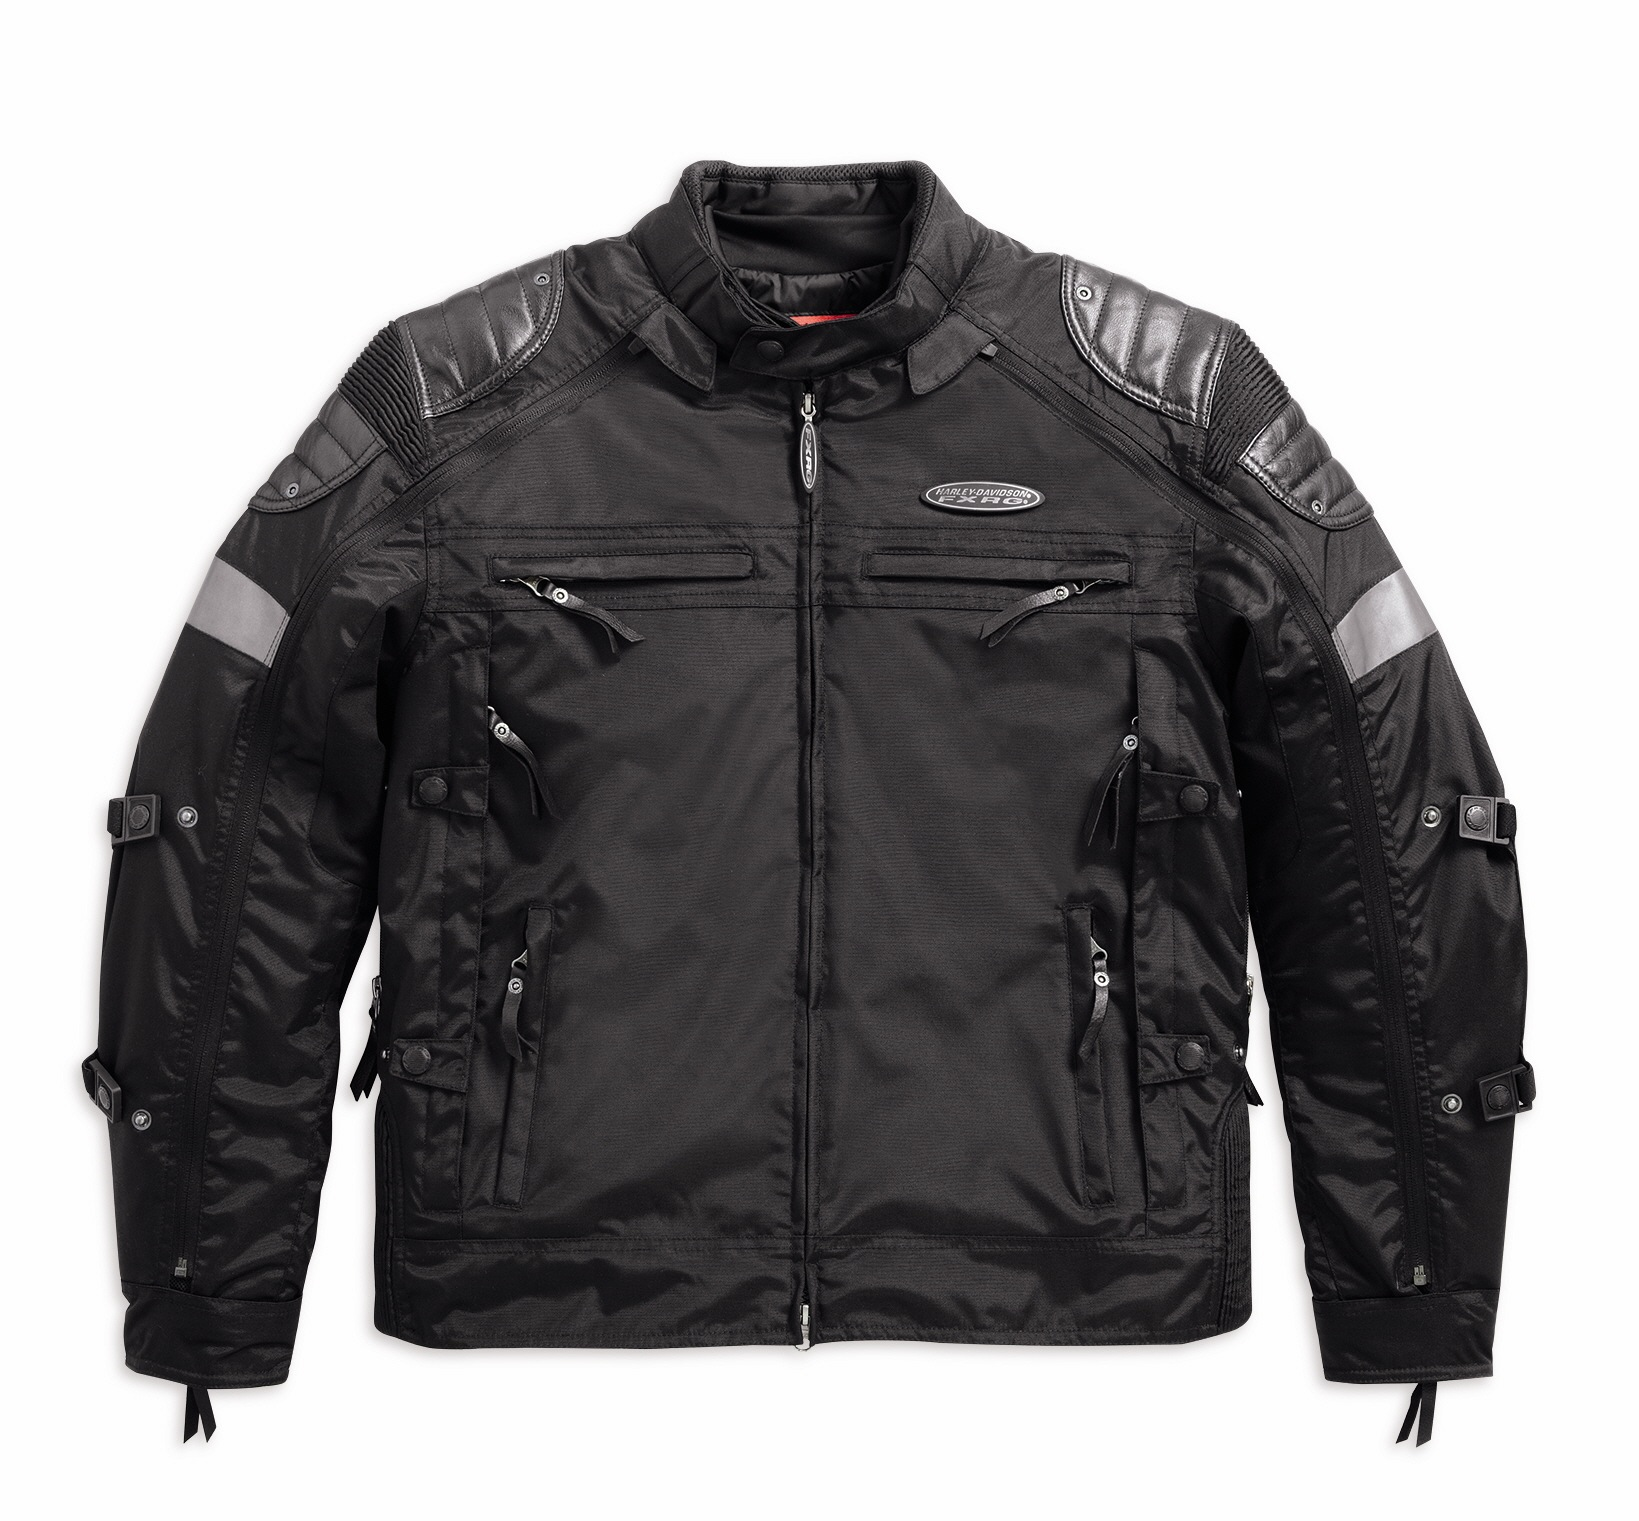 Harley Davidson Releases New Jackets With Triple Vent